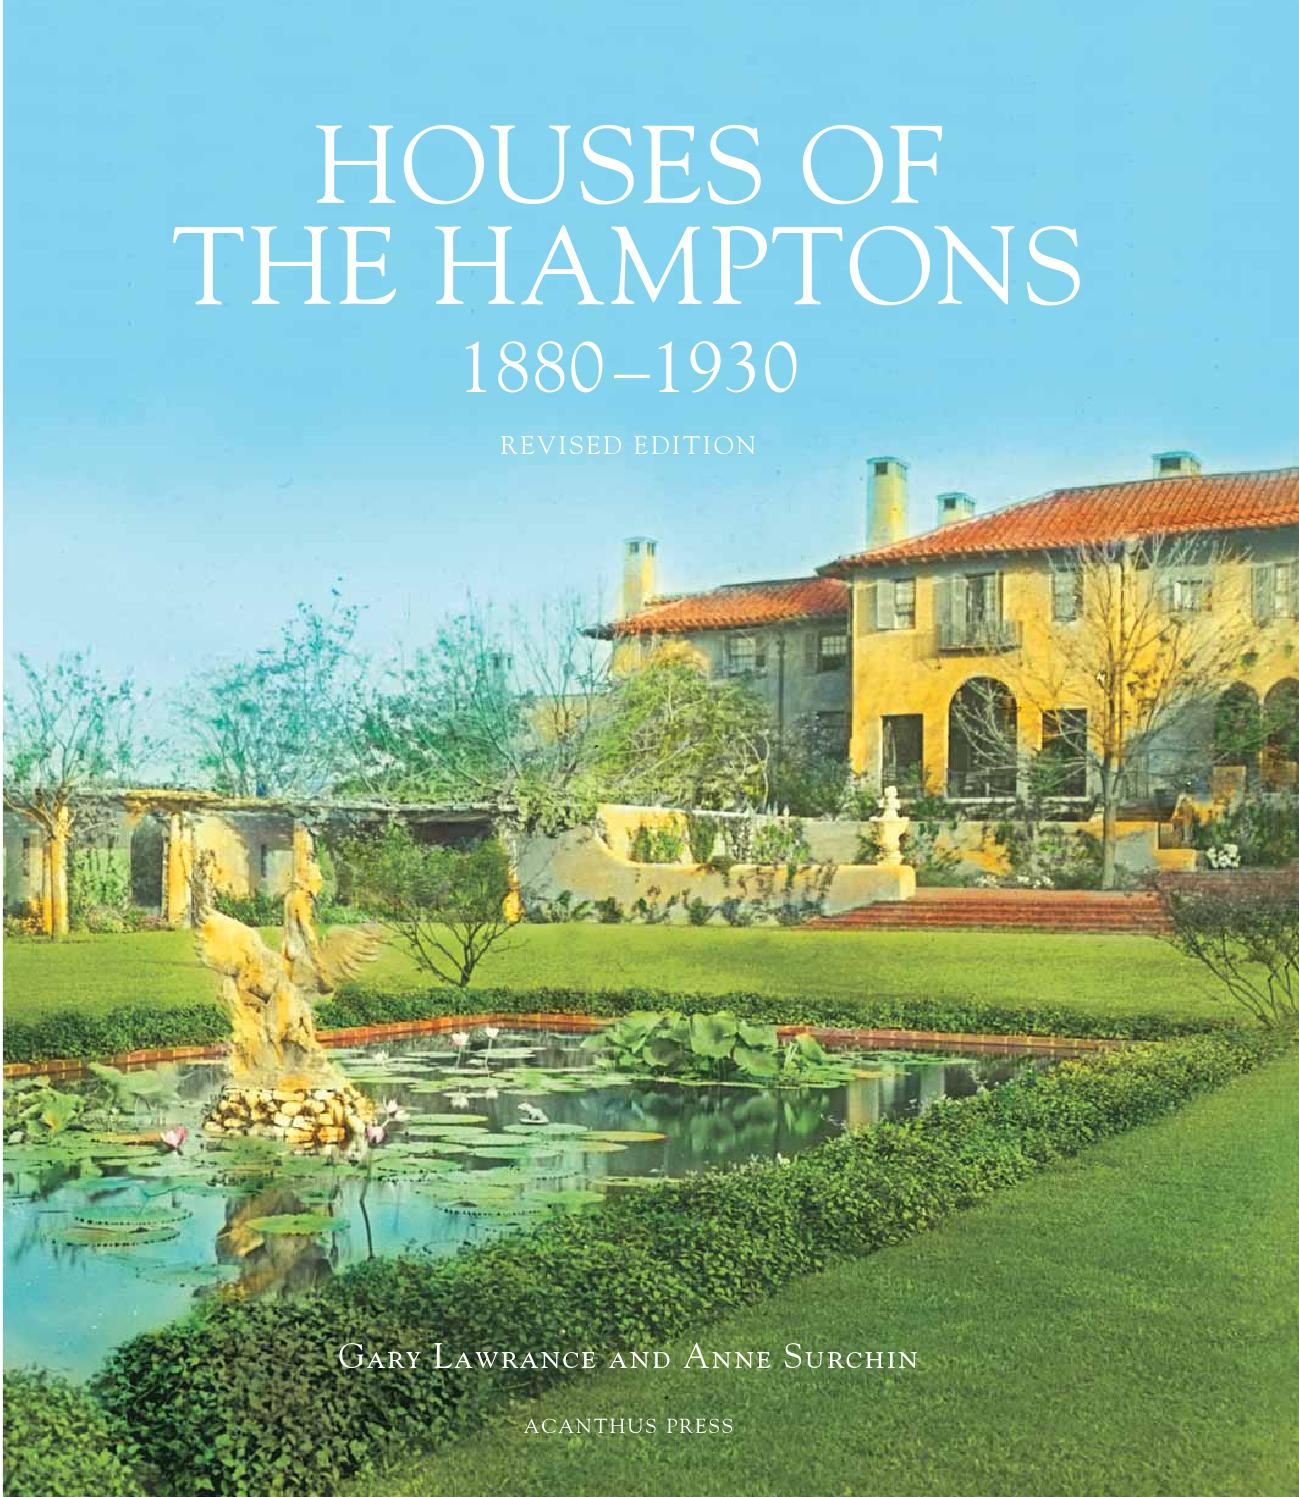 Houses of the hamptons revised edition 2013 by acanthus for Houses of the hamptons